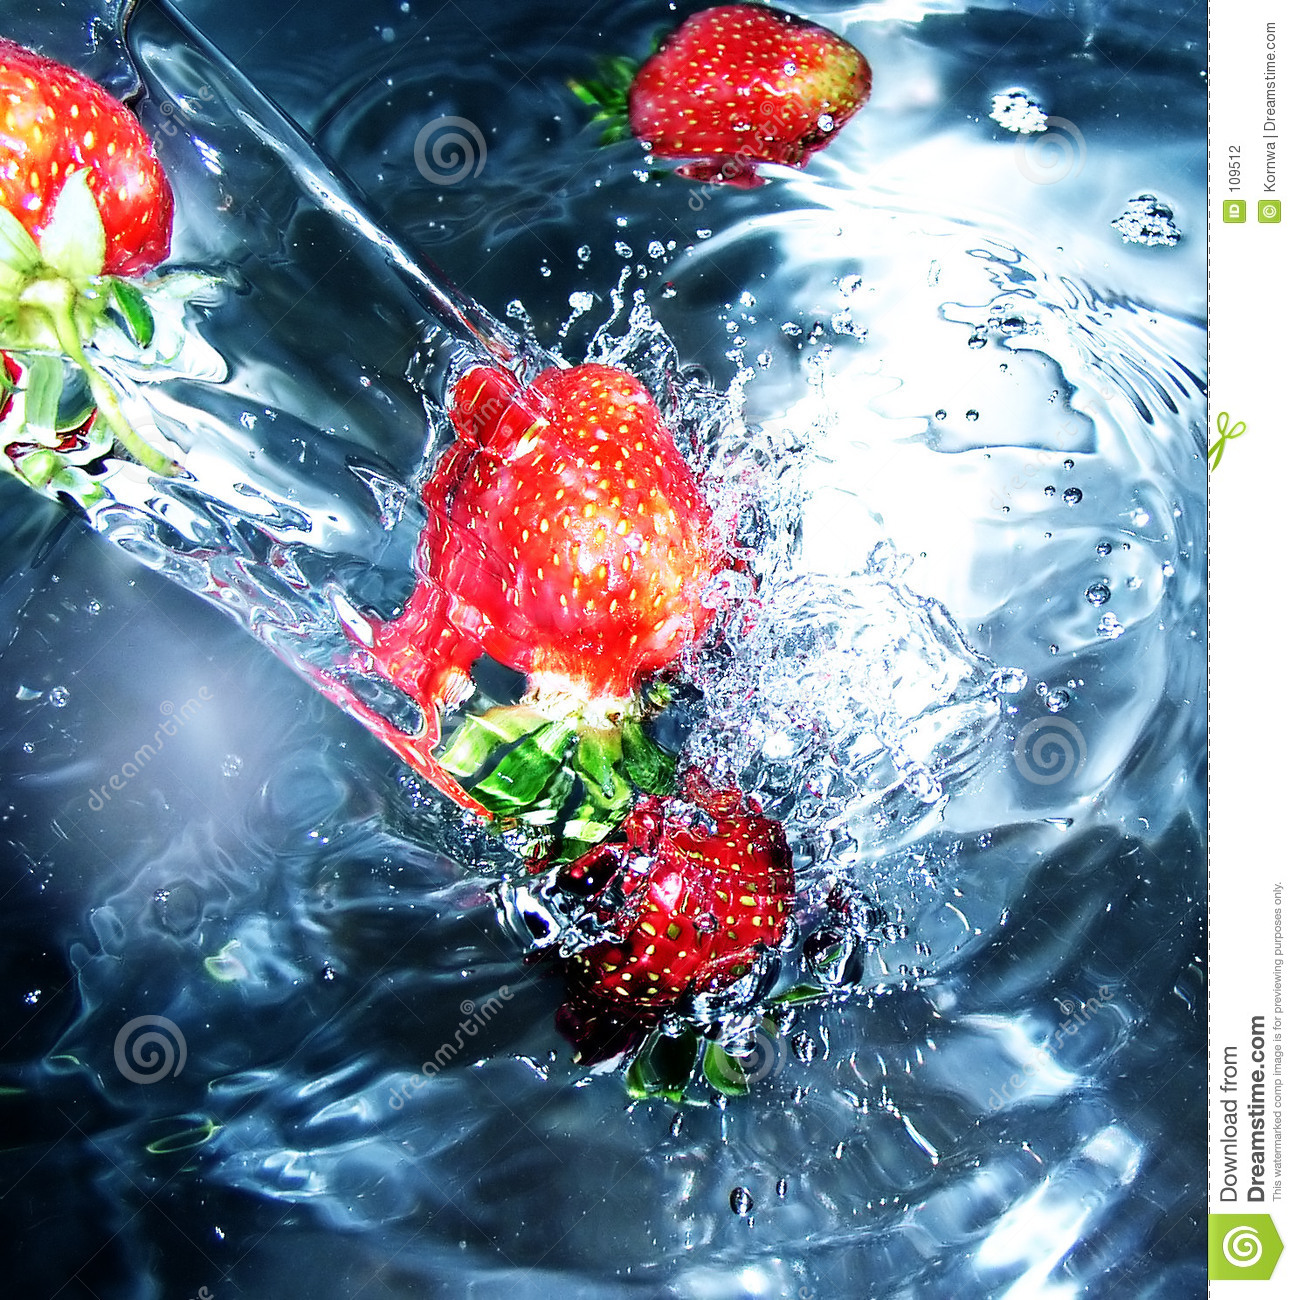 Download Strawberry stock photo. Image of submerged, splashes, liquids - 109512